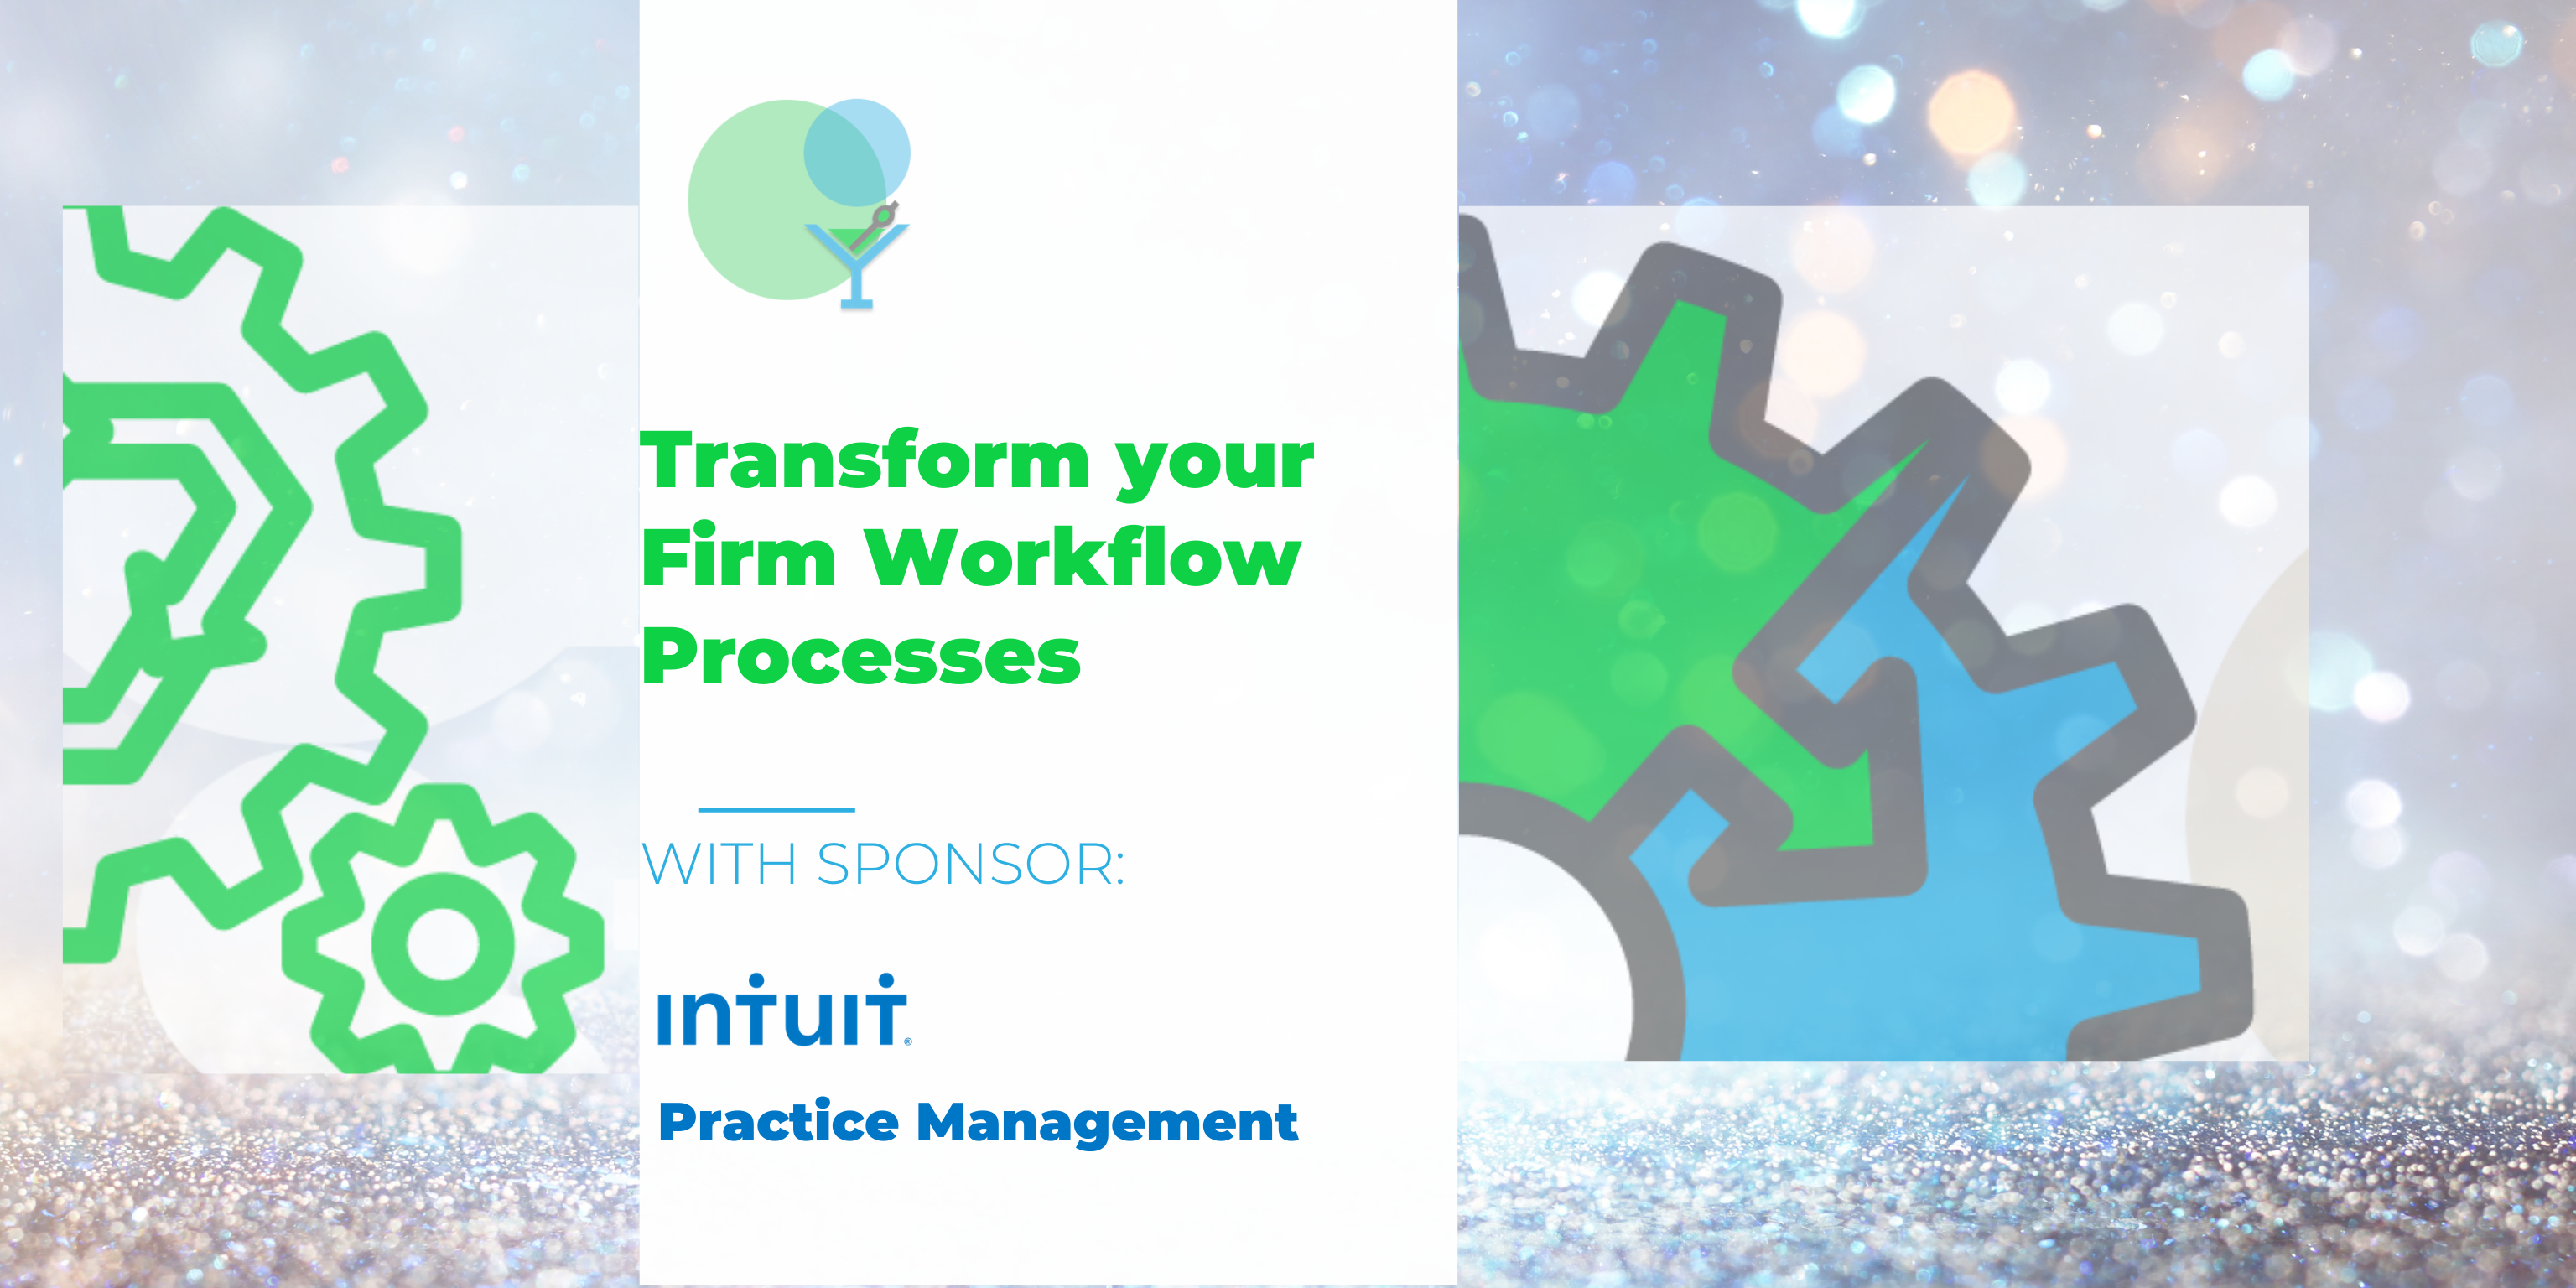 Transform Your Firm Workflows using Intuit Practice Management